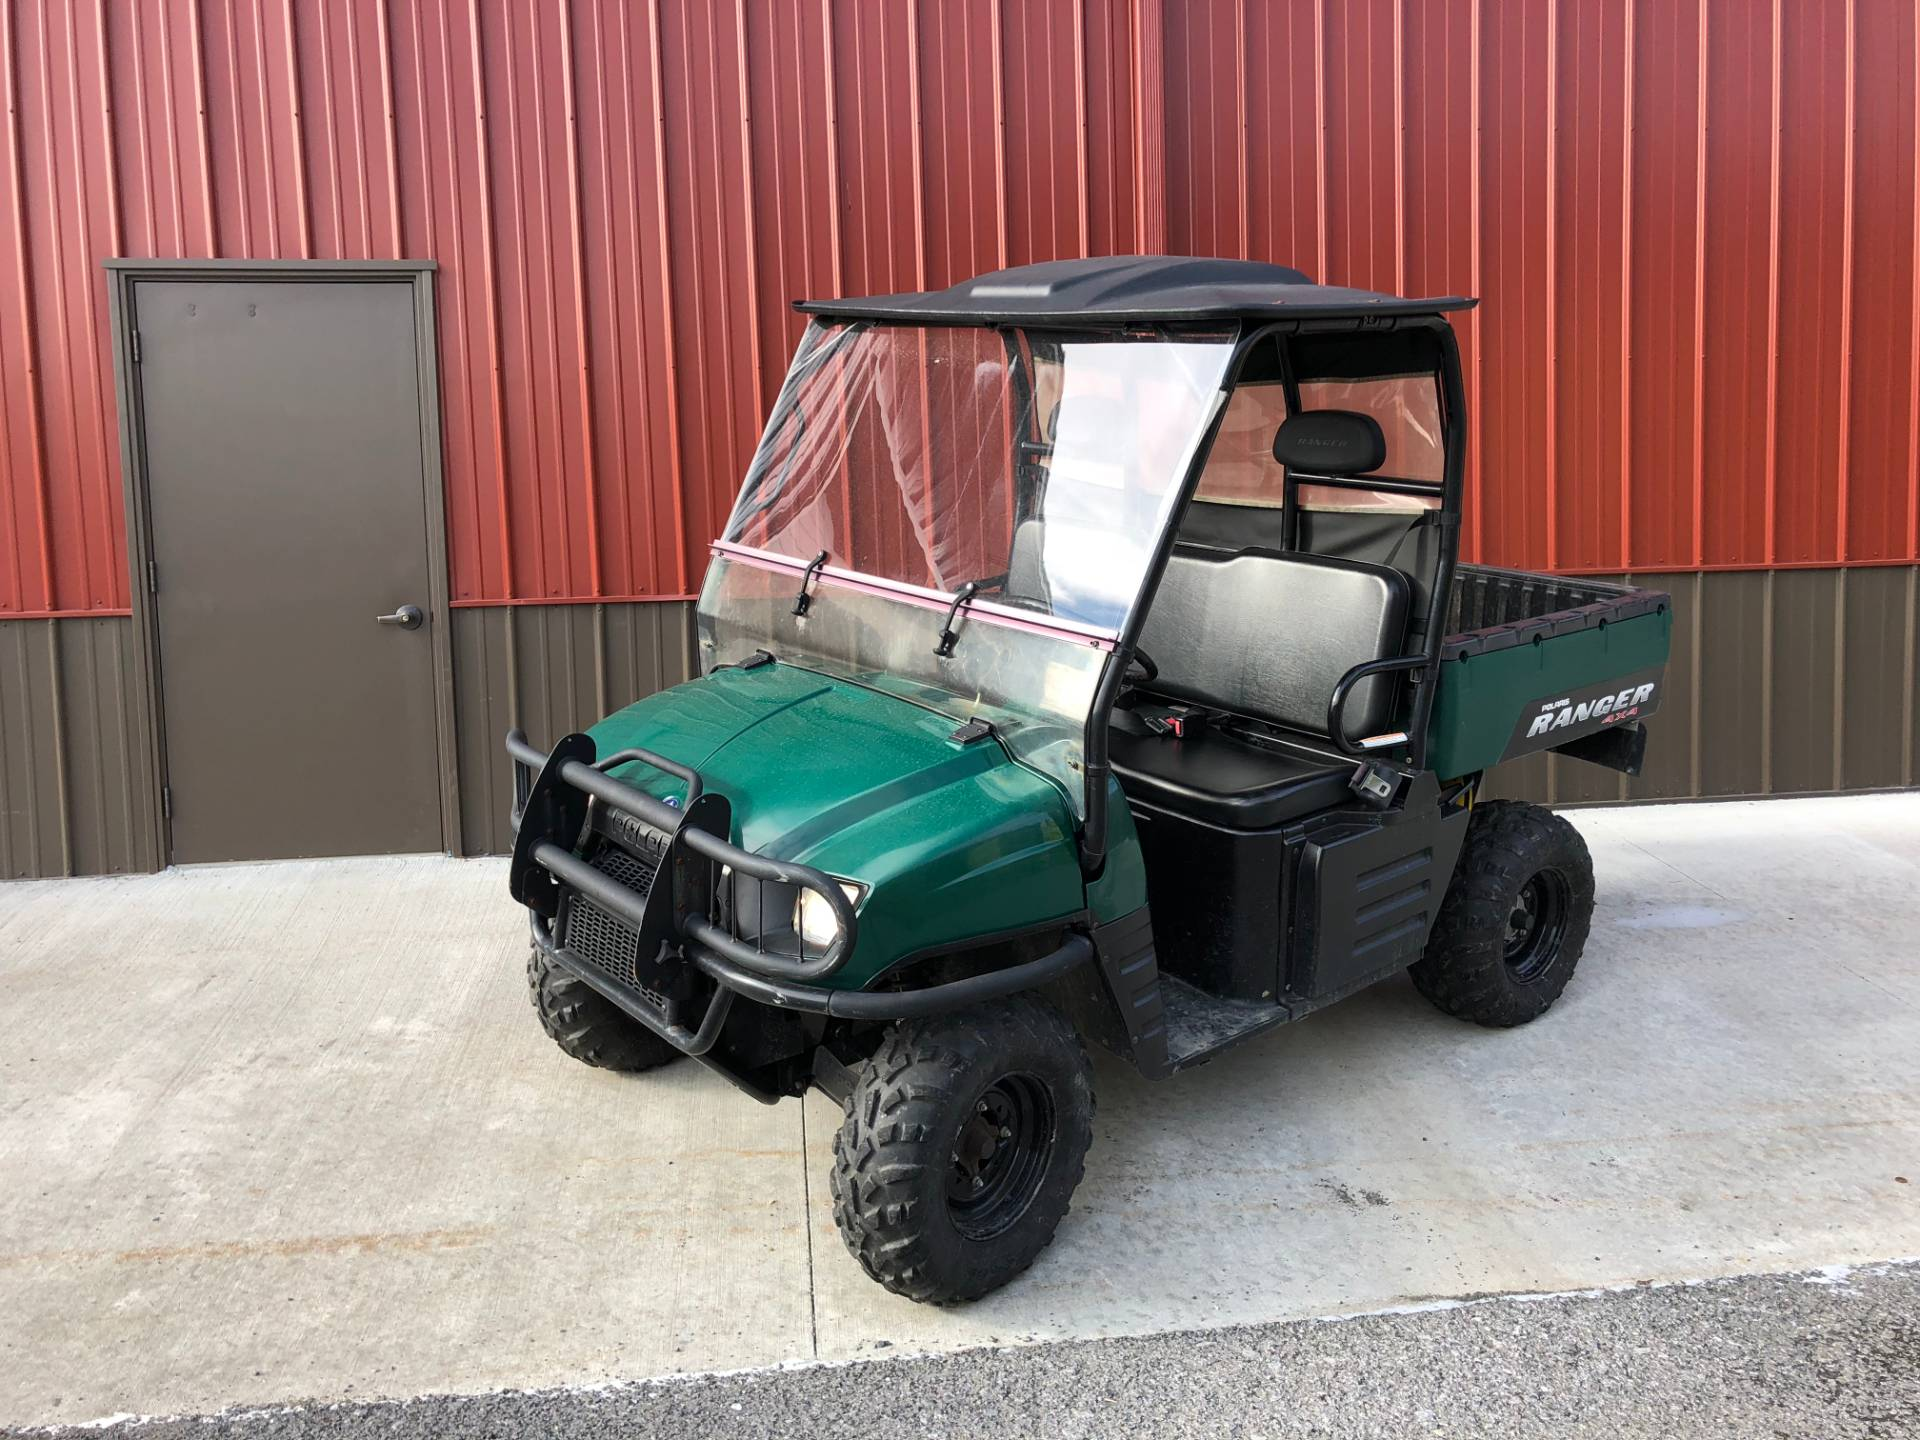 2005 Polaris Ranger 4x4 in Tyrone, Pennsylvania